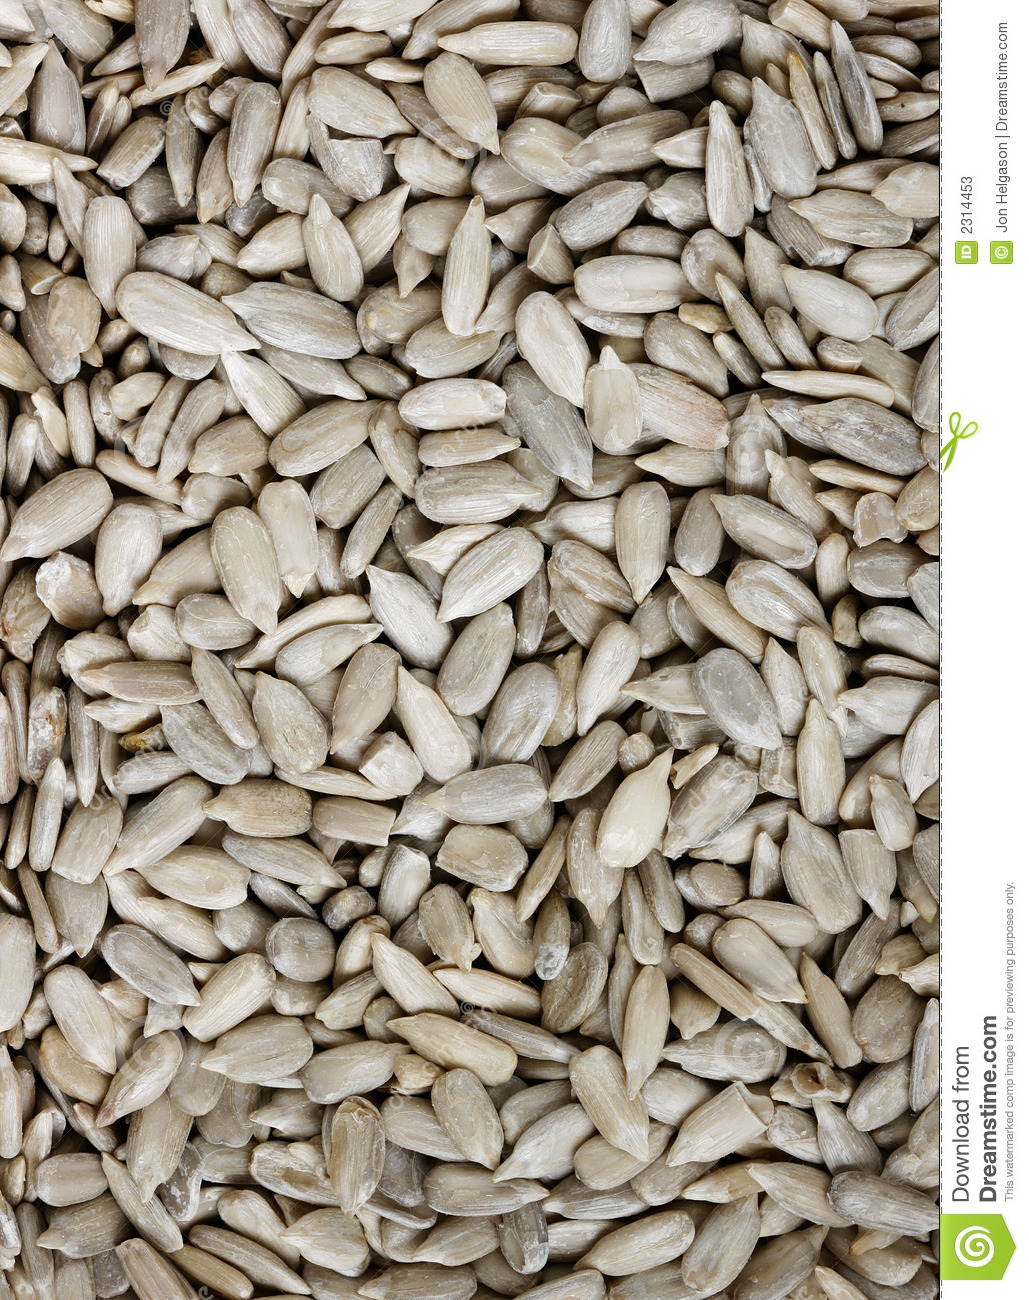 how to eat sunflower seeds with braces